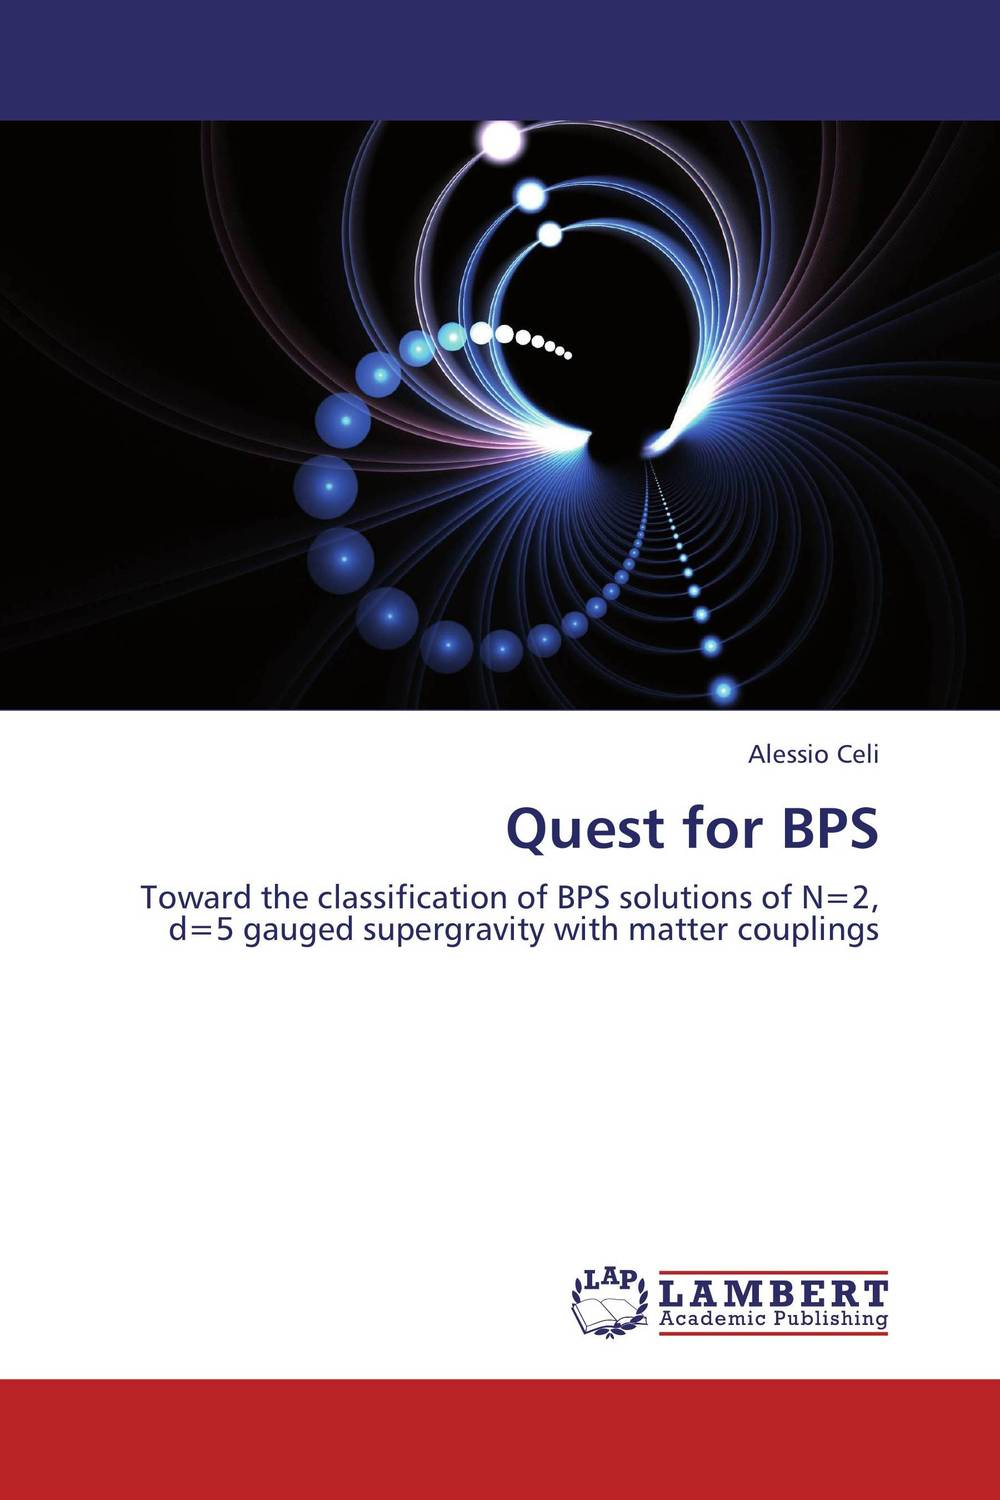 Quest for BPS alessio celi quest for bps